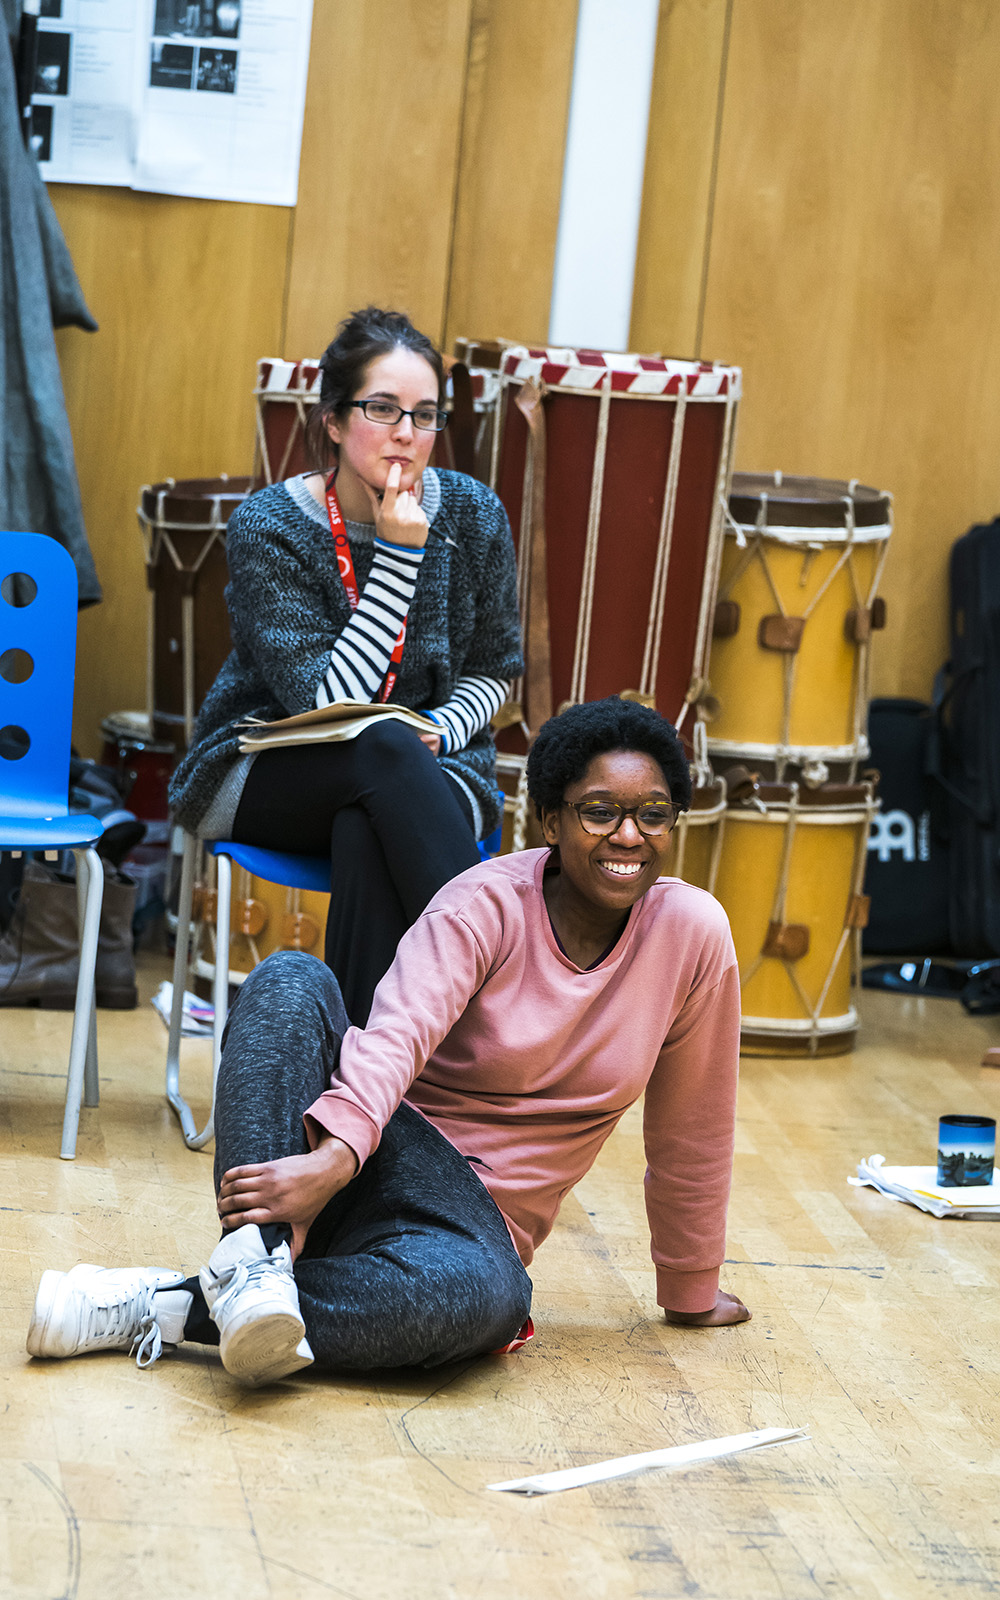 Two people are in a rehearsal, one is sat on a chair looking pensive, the other sits on the floor smiling